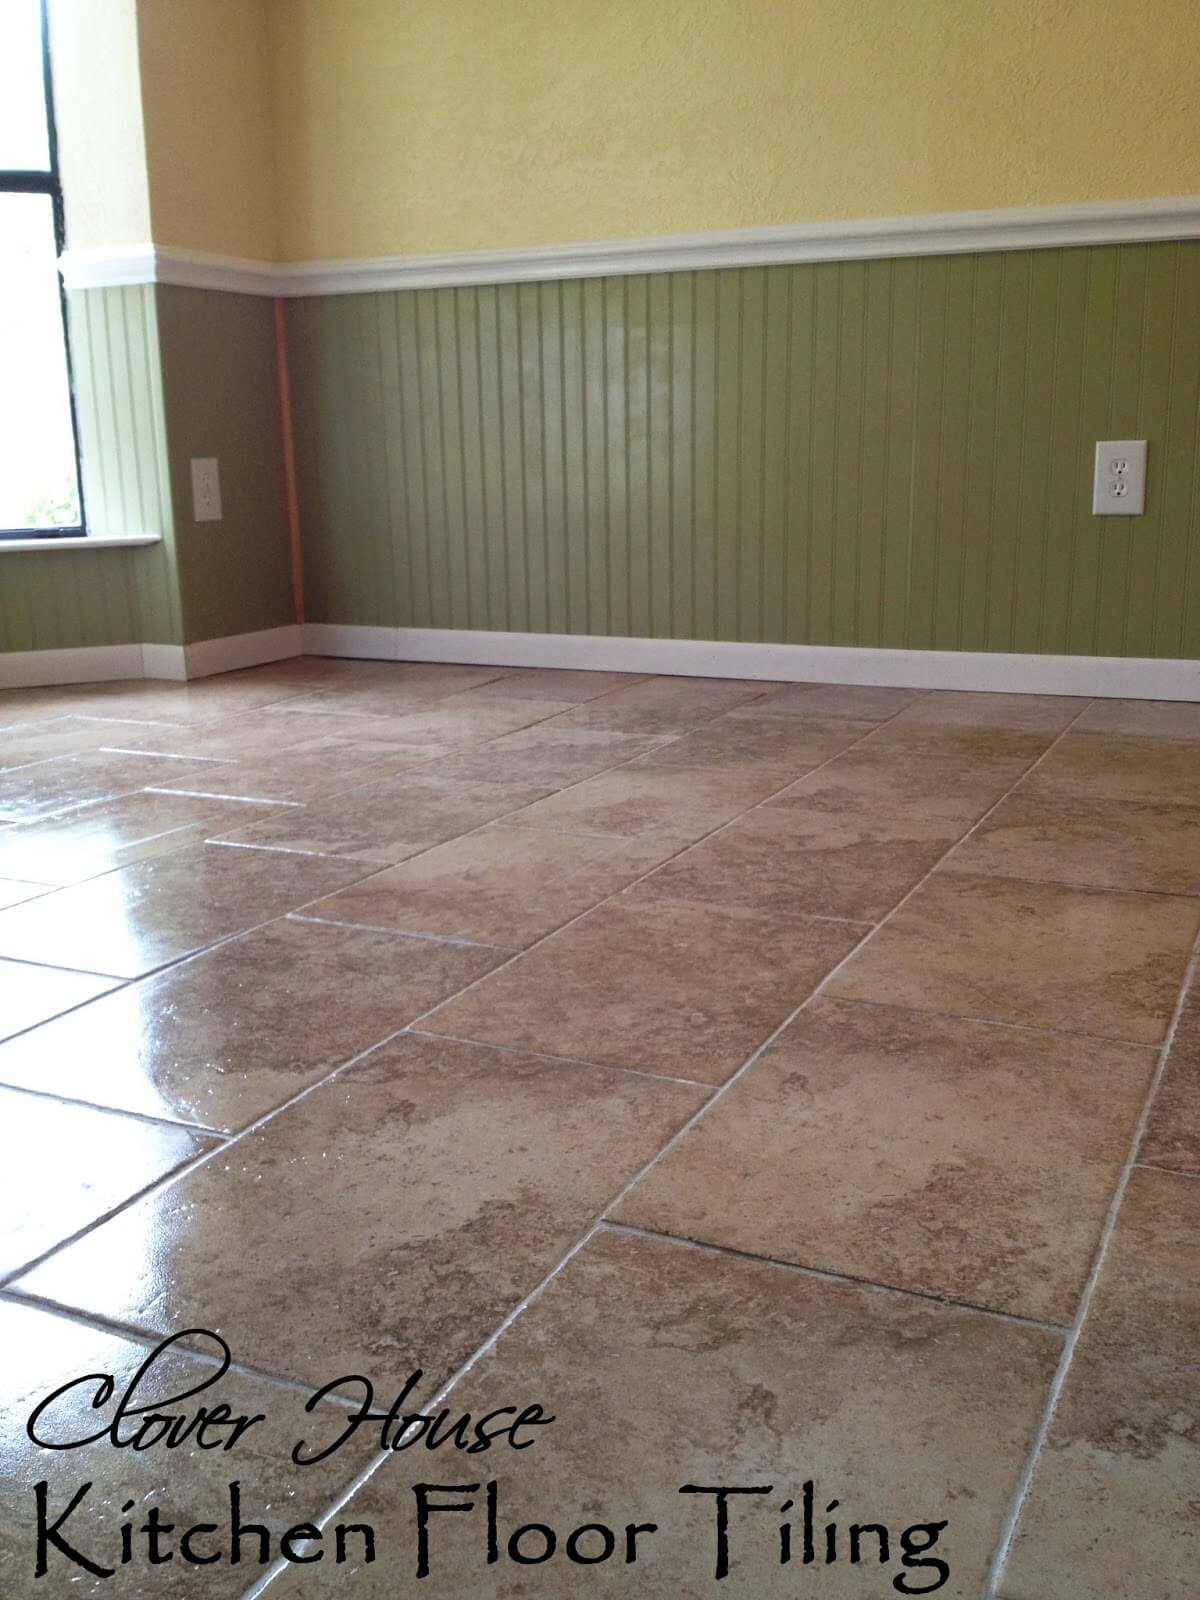 Classic Brown and Tan Kitchen Floor Tile